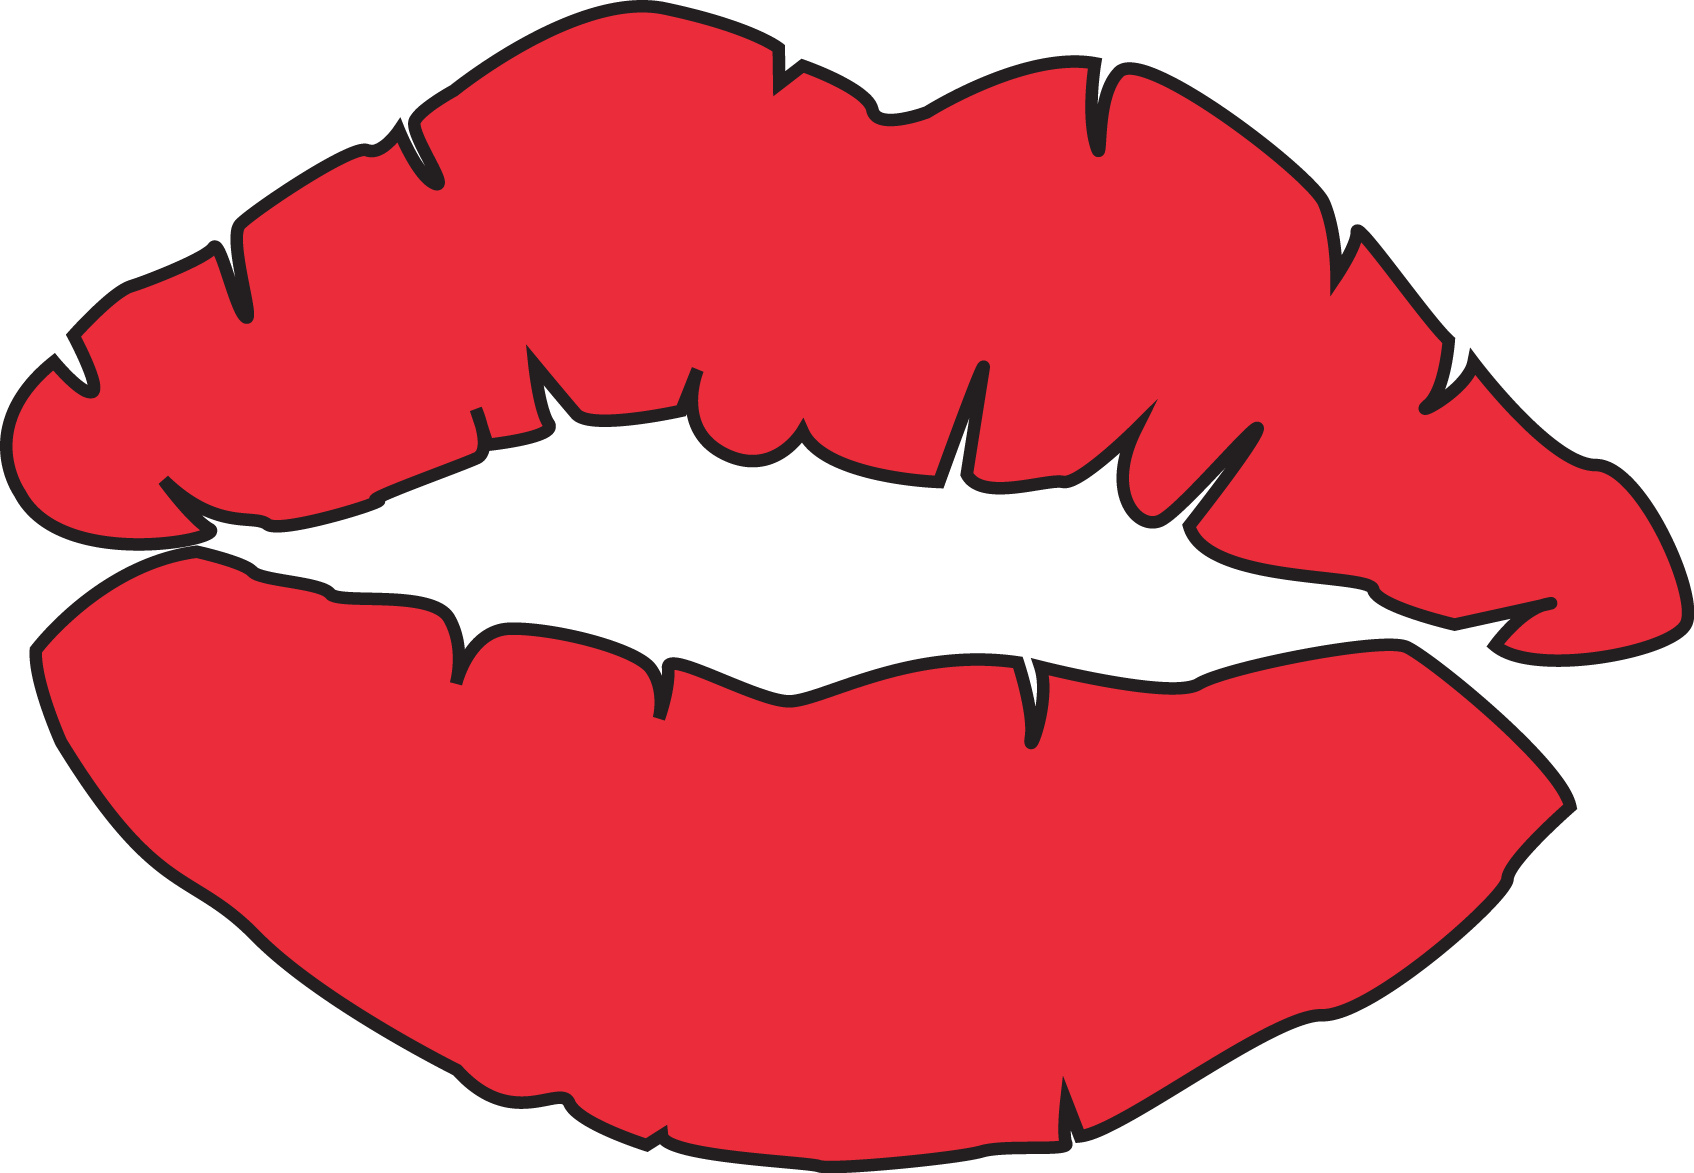 Fish kissing clipart graphic free Kiss Clipart at GetDrawings.com | Free for personal use Kiss Clipart ... graphic free